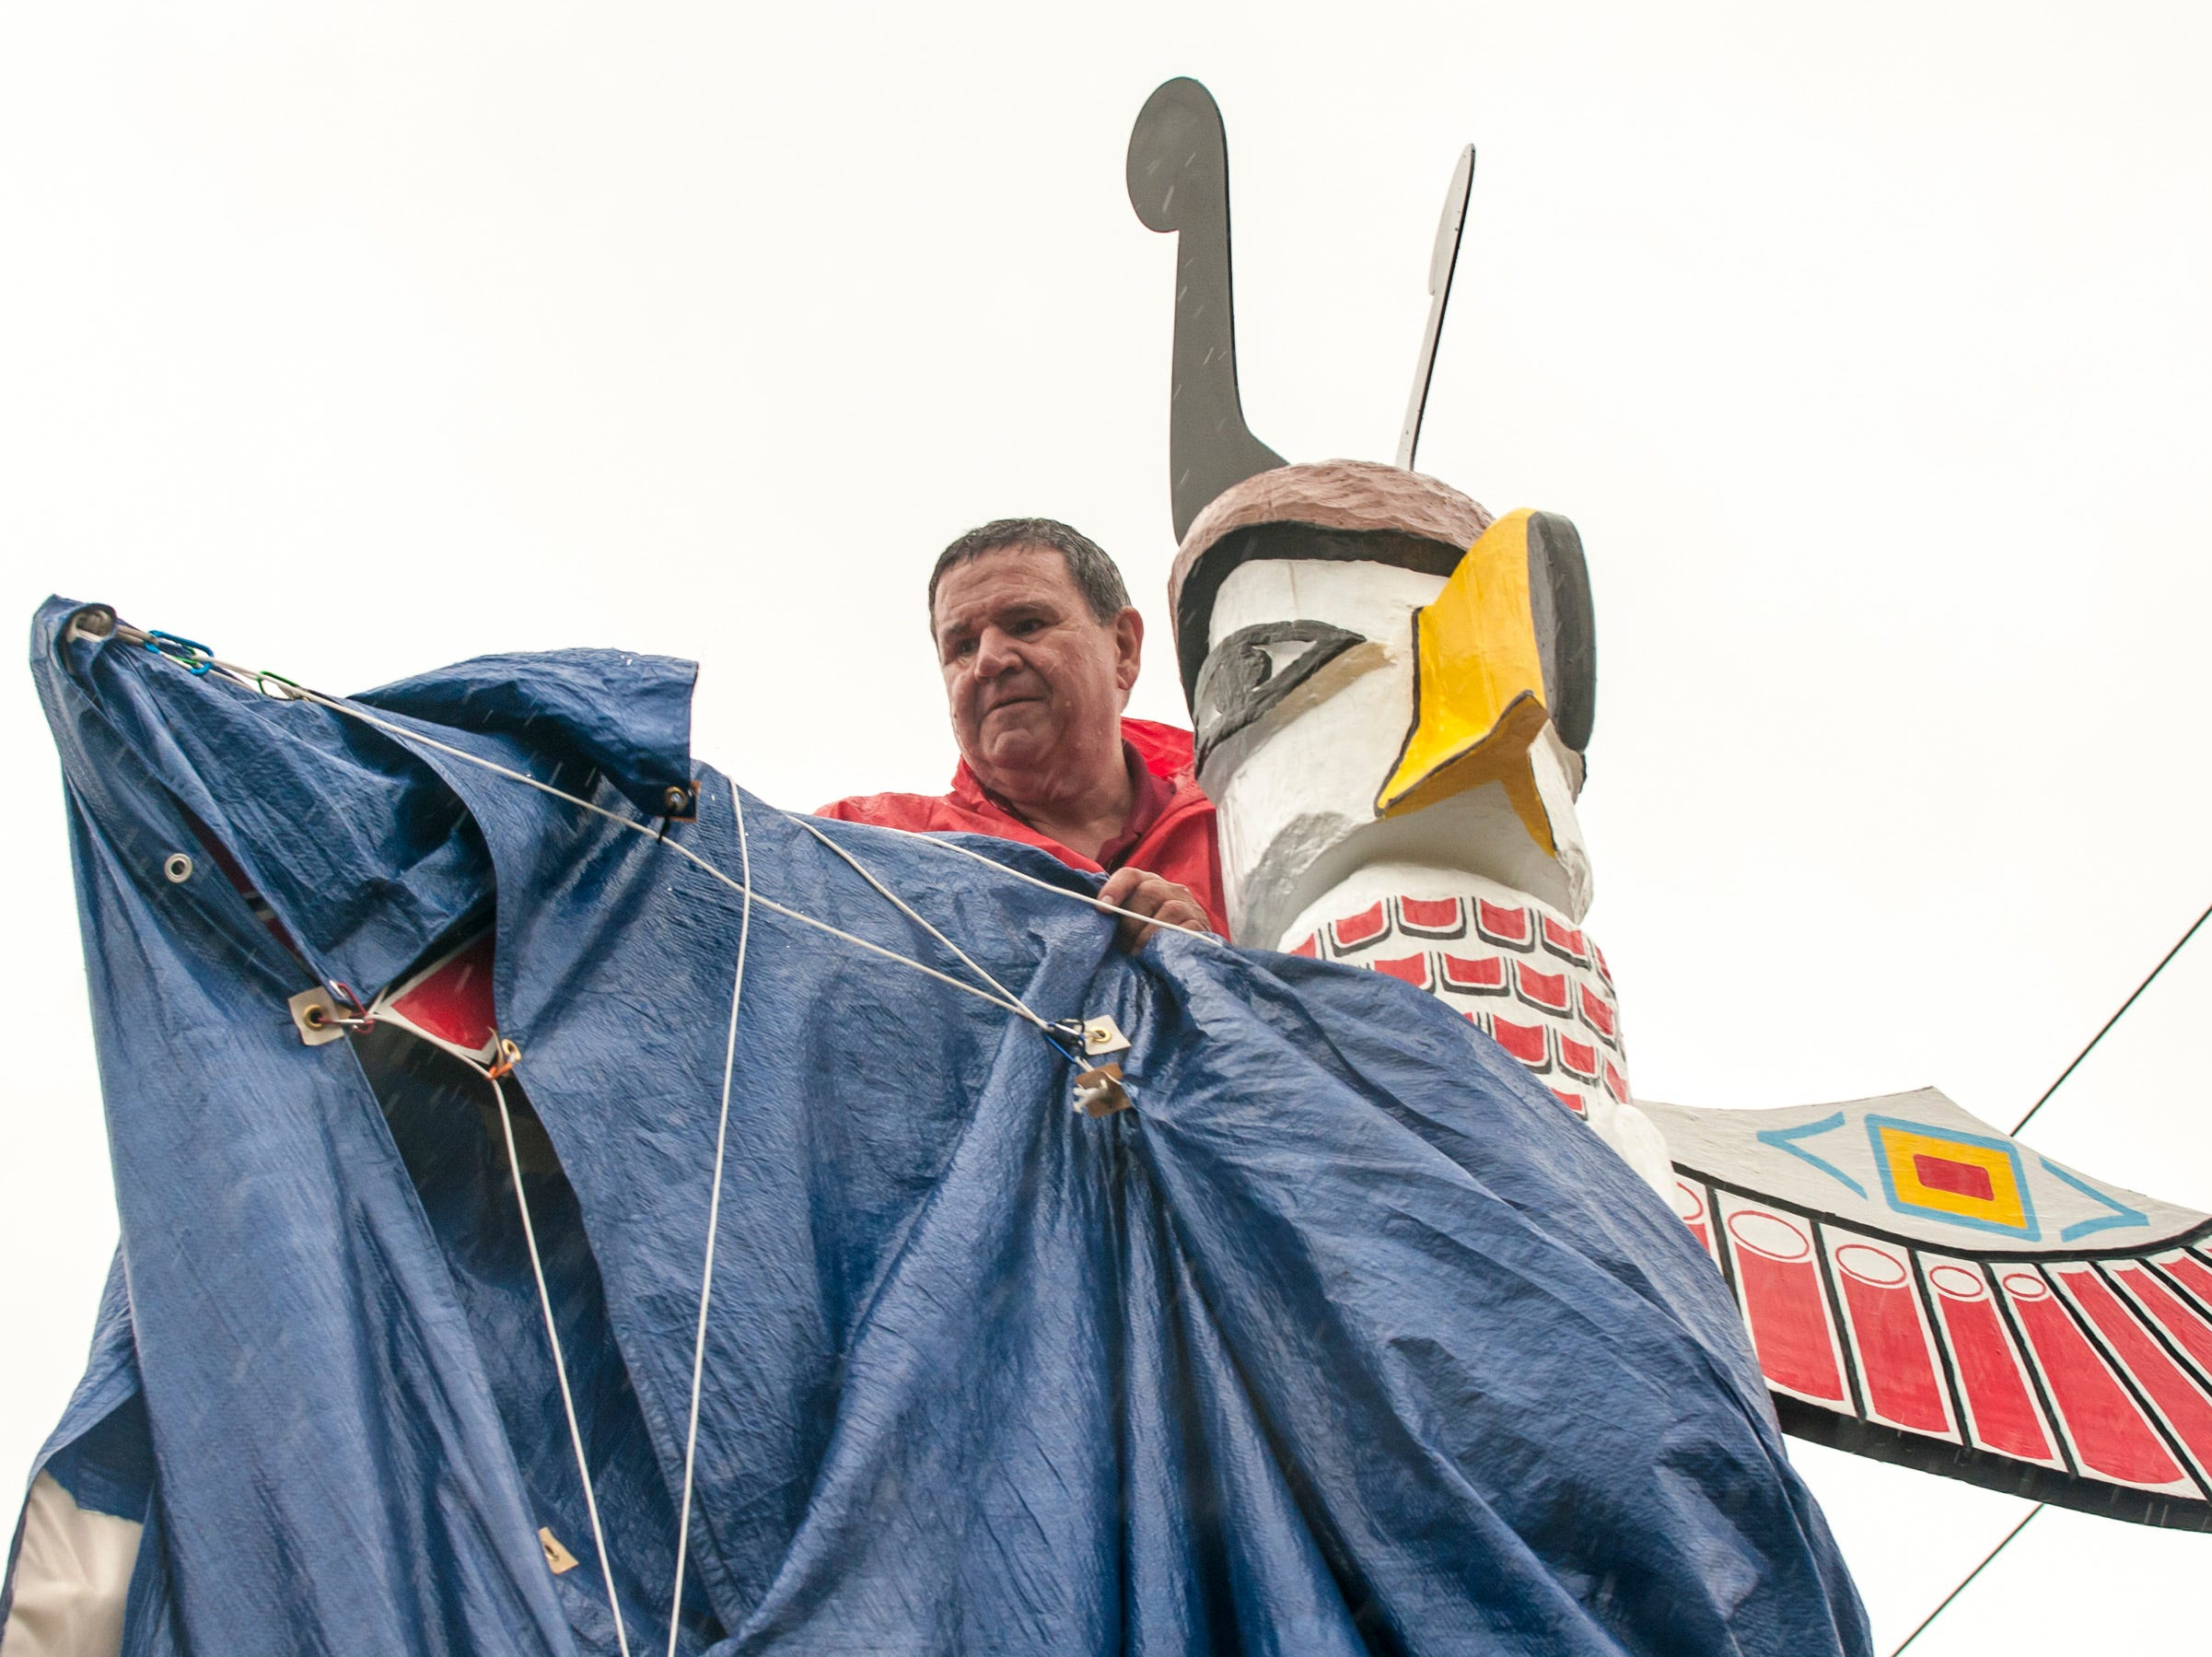 Fred Nickerson removes the tarp during a ceremony held Saturday to unveil the newly restored totem pole placed near Truck One in Newark, Ohio.